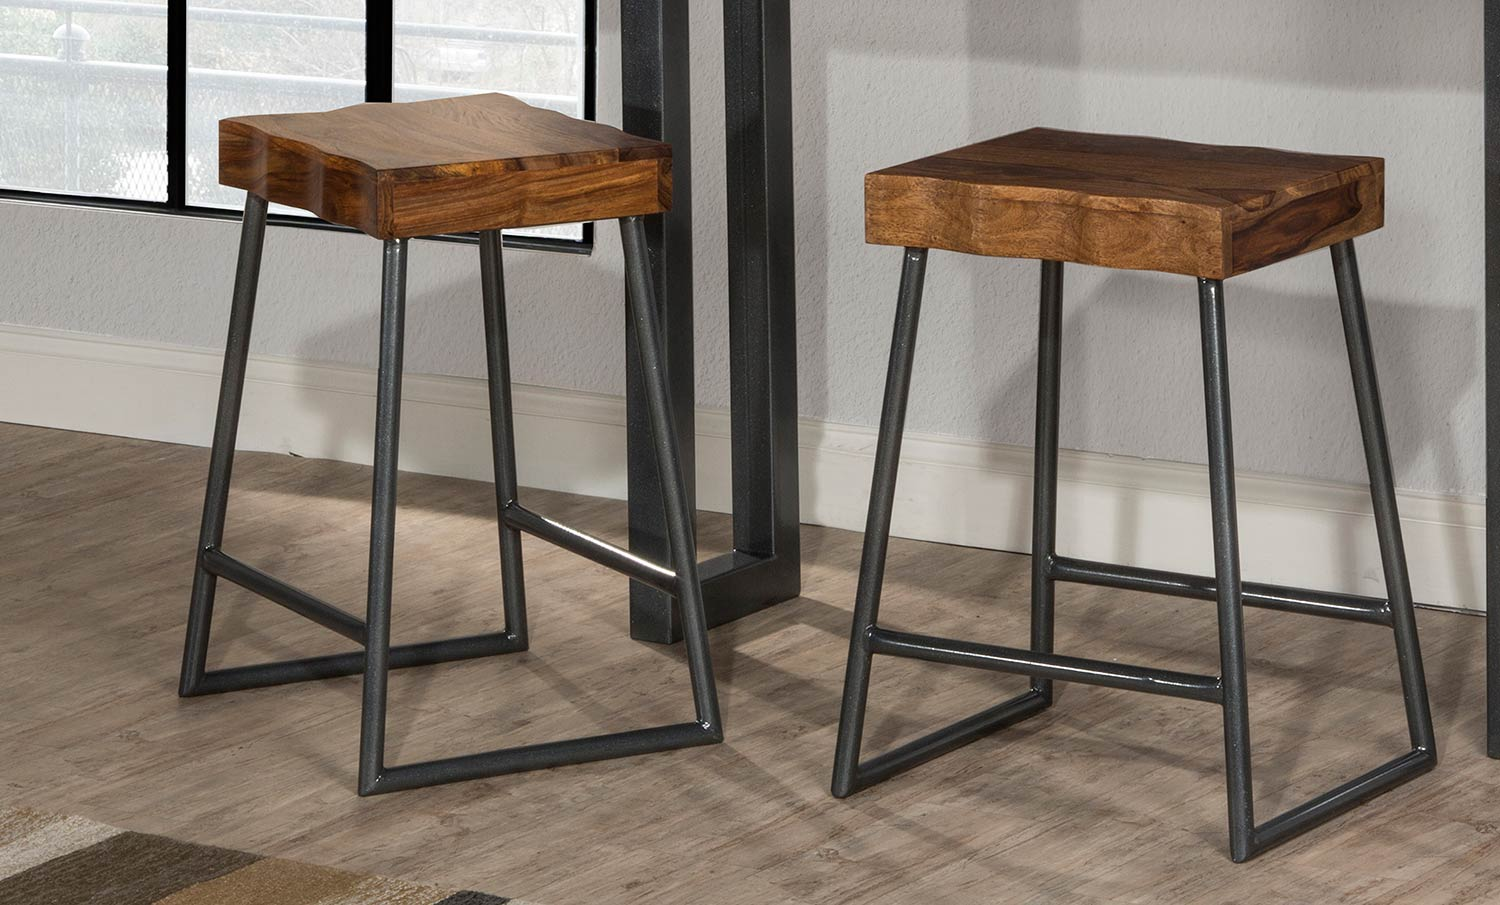 Hillsdale emerson non swivel backless counter stool natural sheesham wood gray metallic